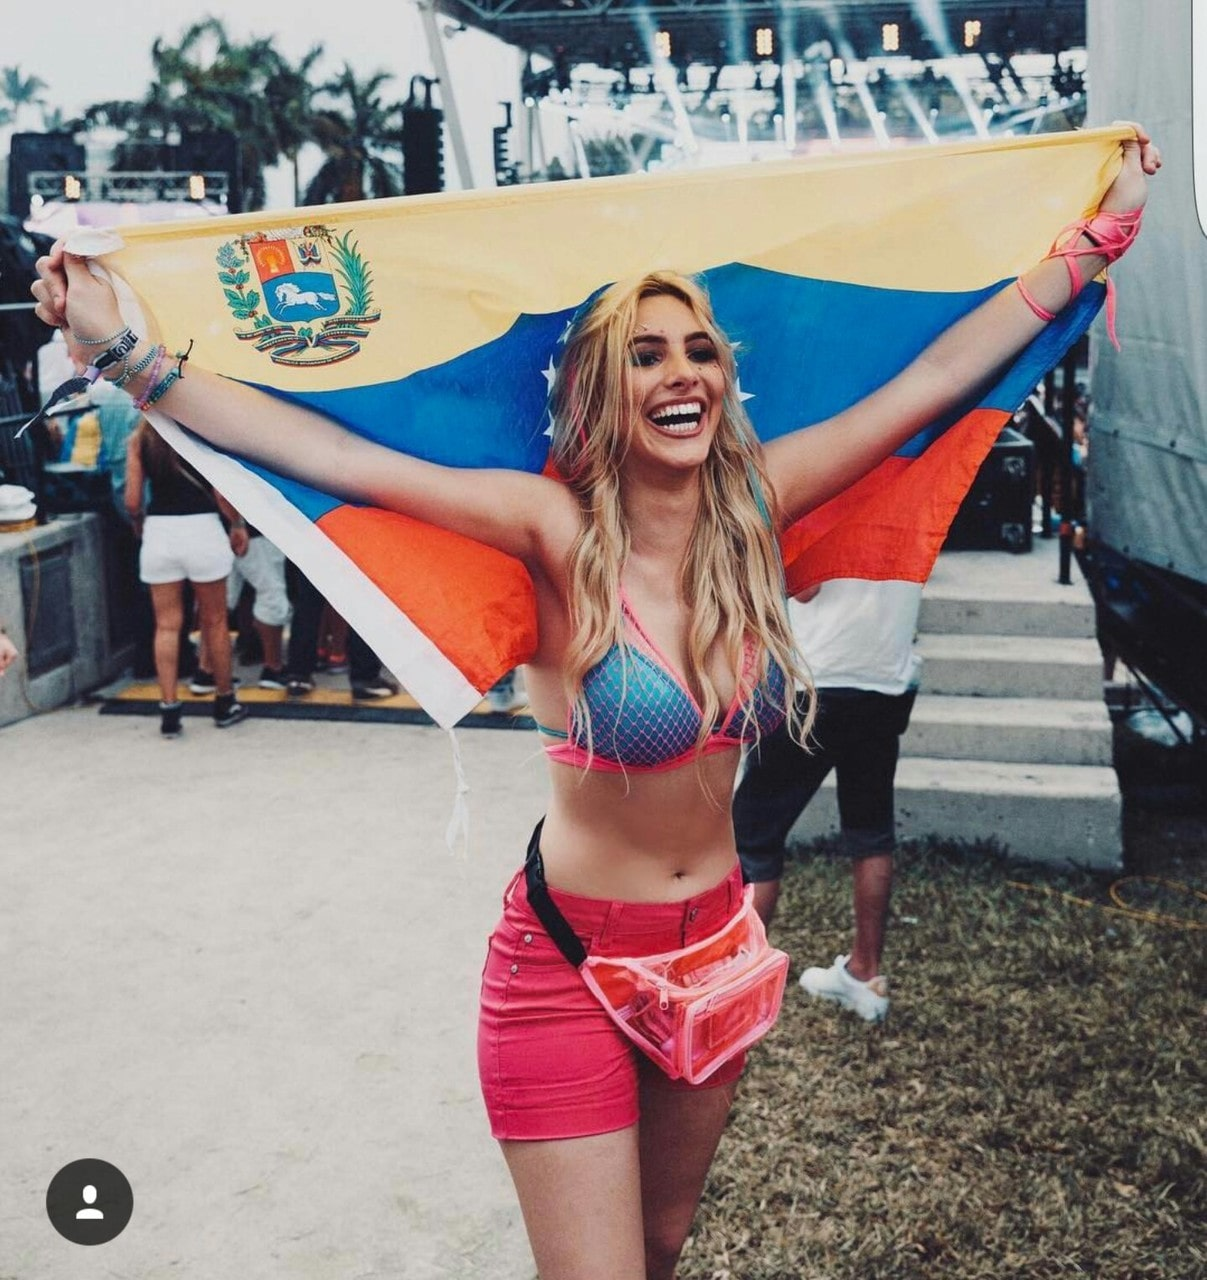 Lele Pons beautiful